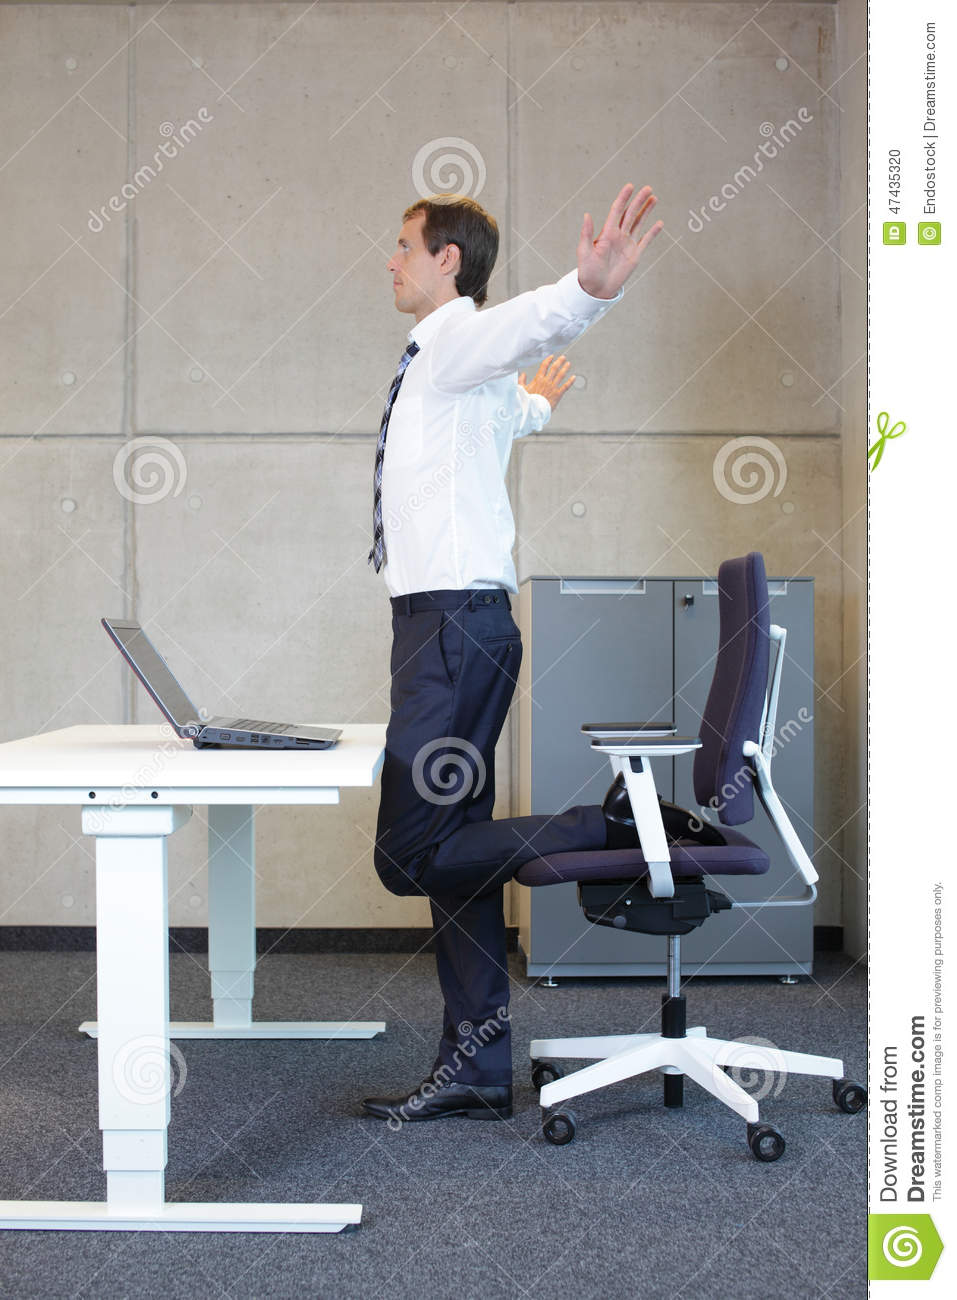 business man exercises in office - Office Chair For Short Person